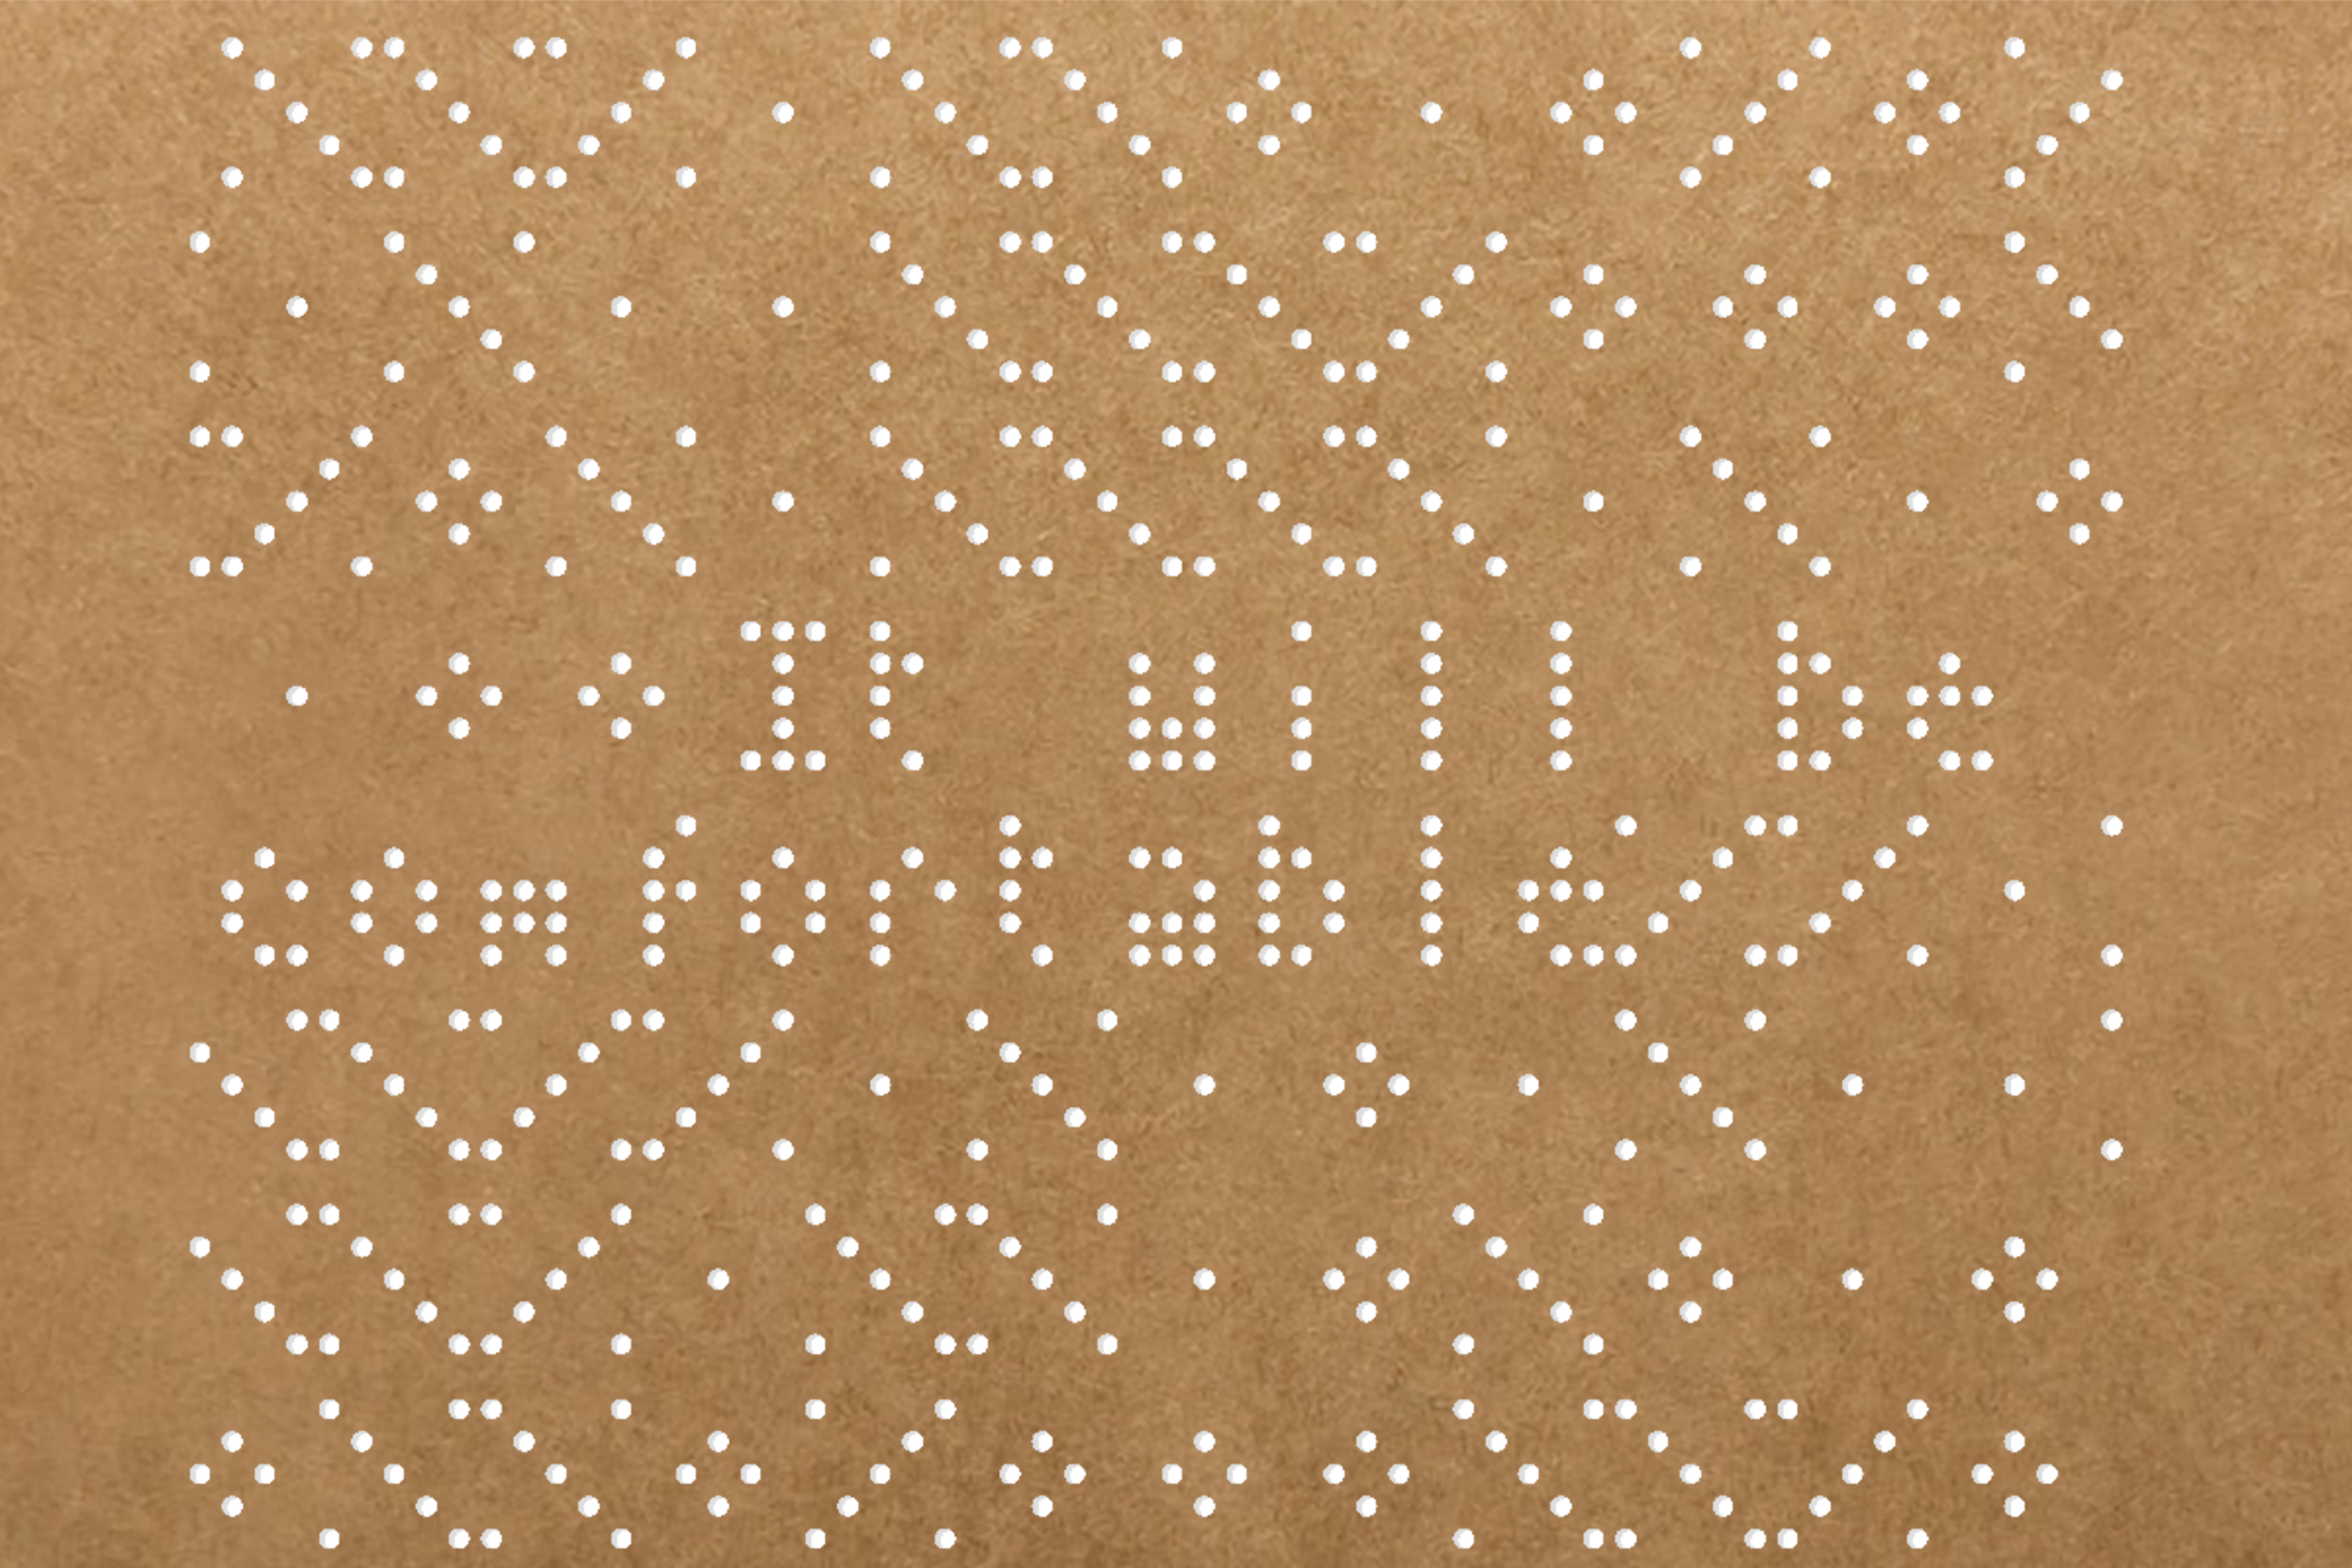 Jacquard Loom-inspired punch card graphic representing genomic data and CRISPR sites.